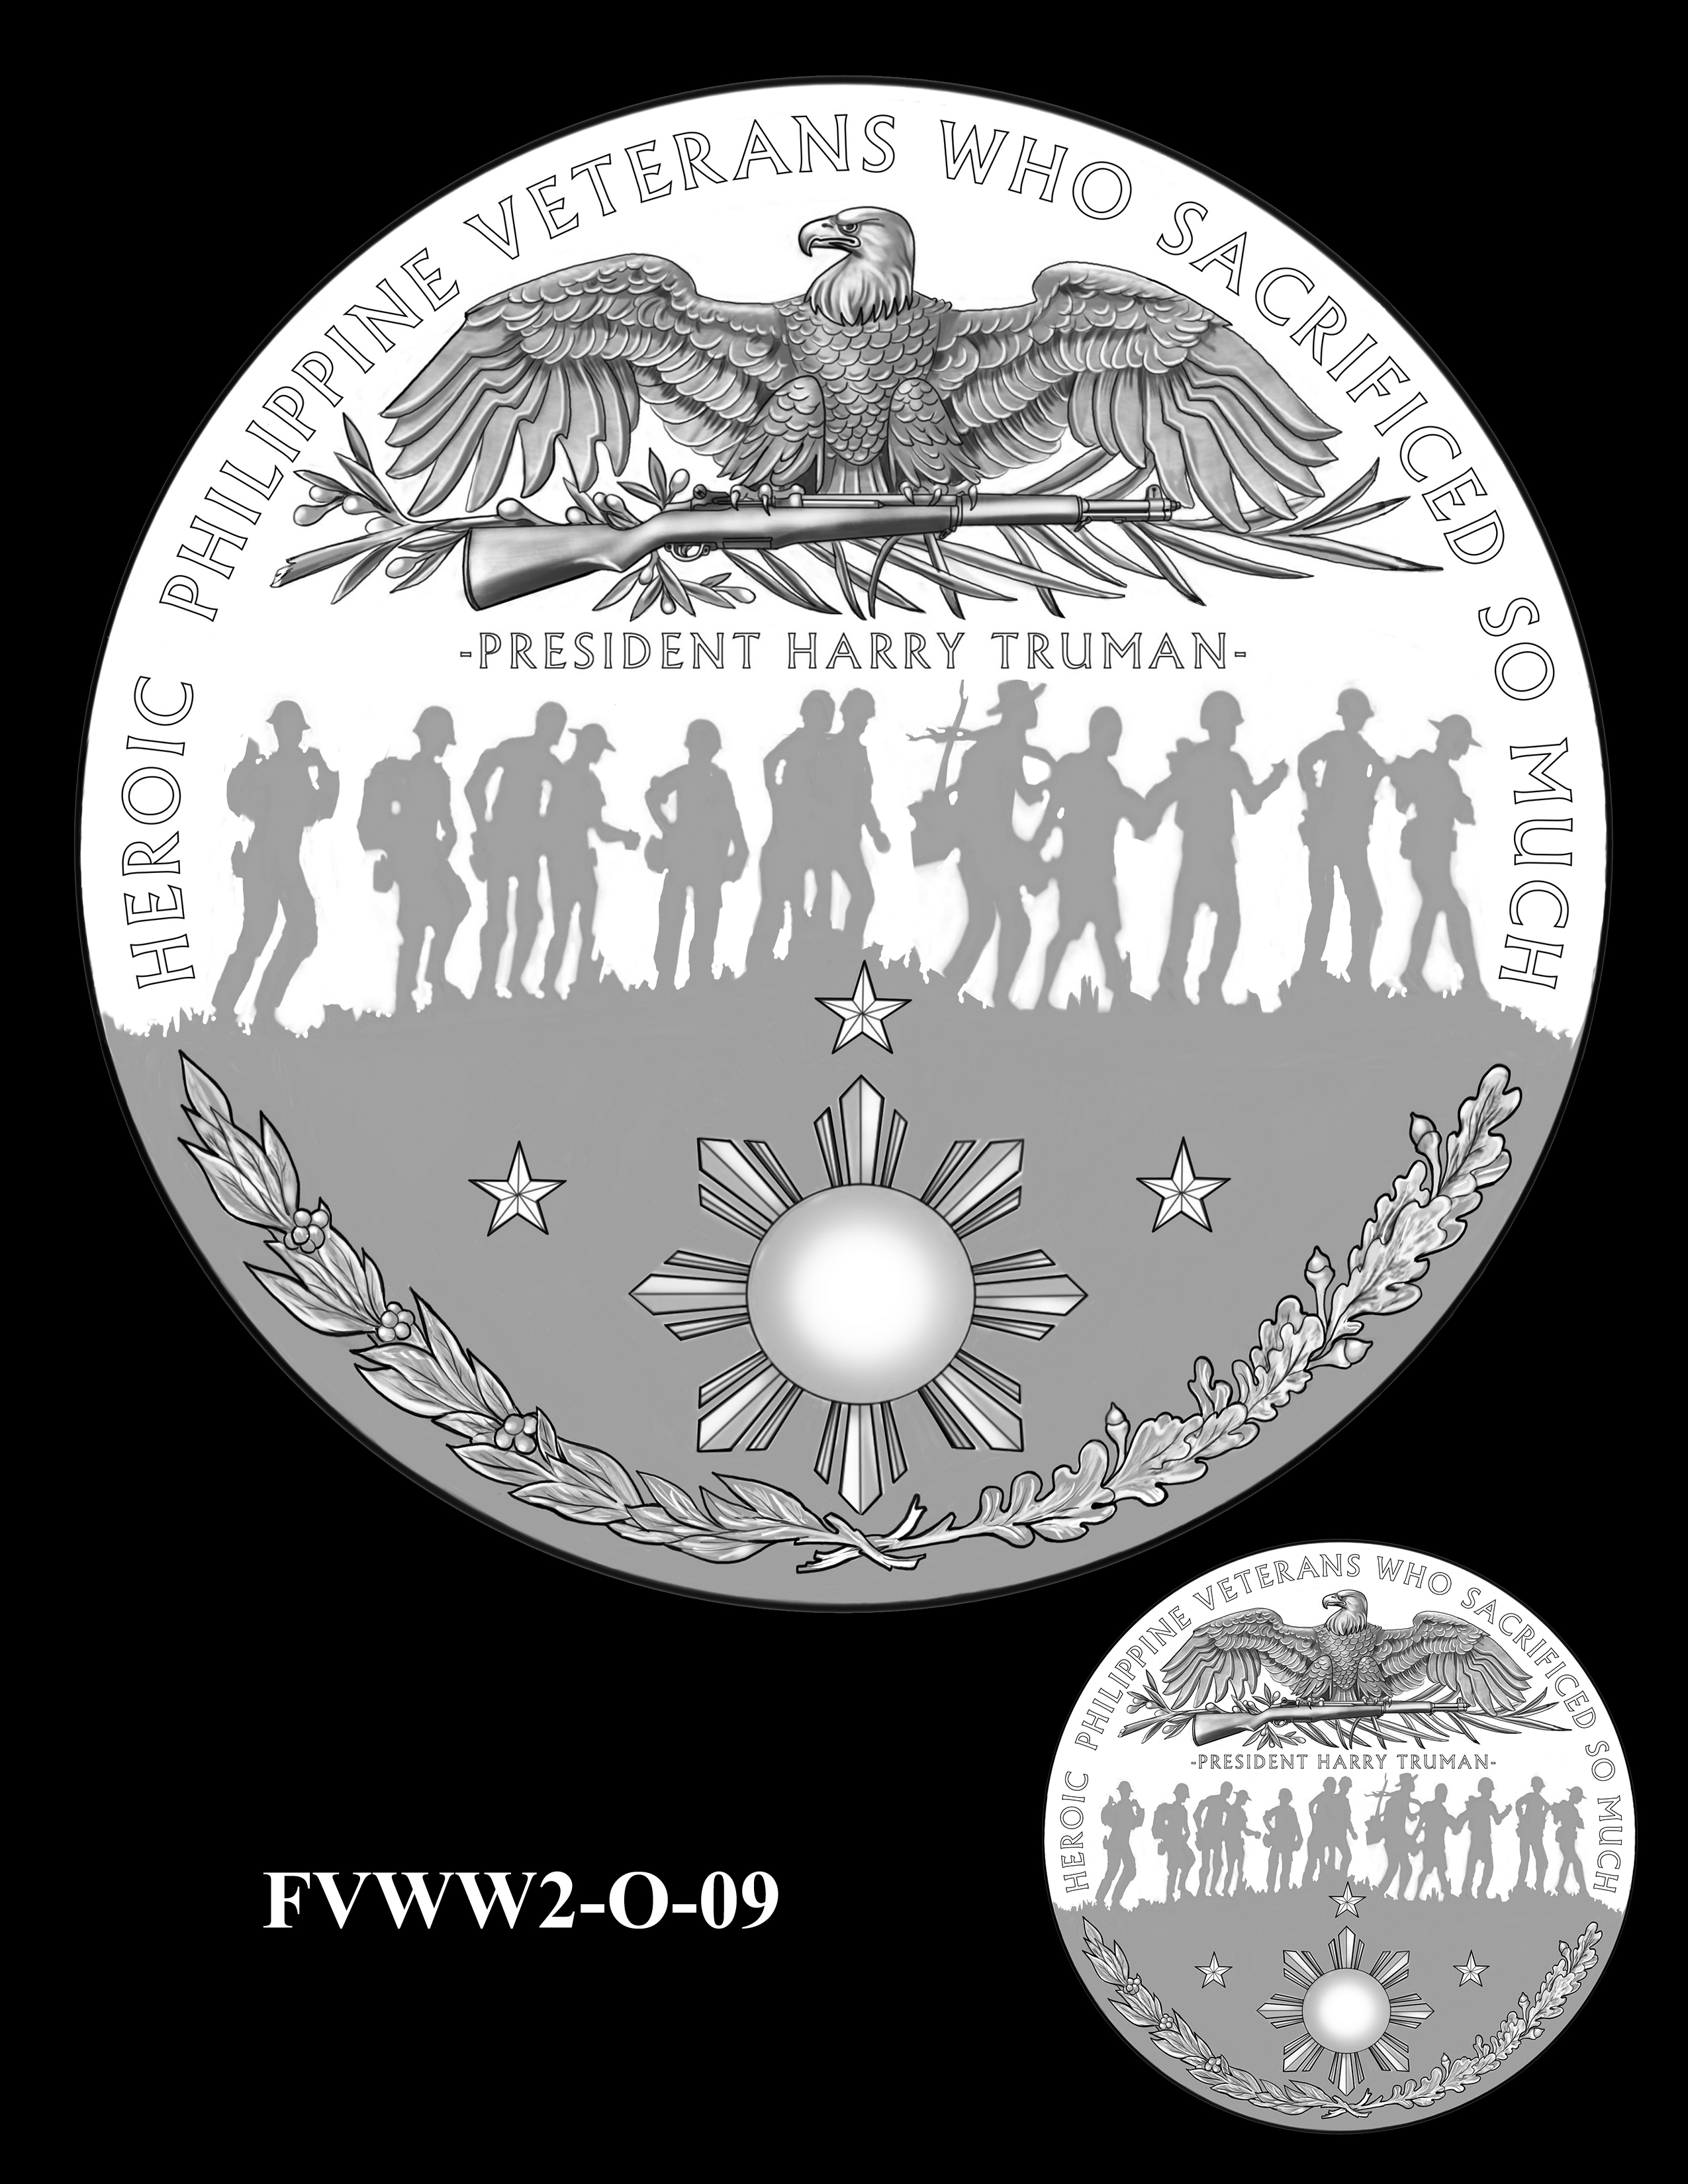 FVWW2-O-09 -- Filipino Veterans of World War II Congressional Gold Medal